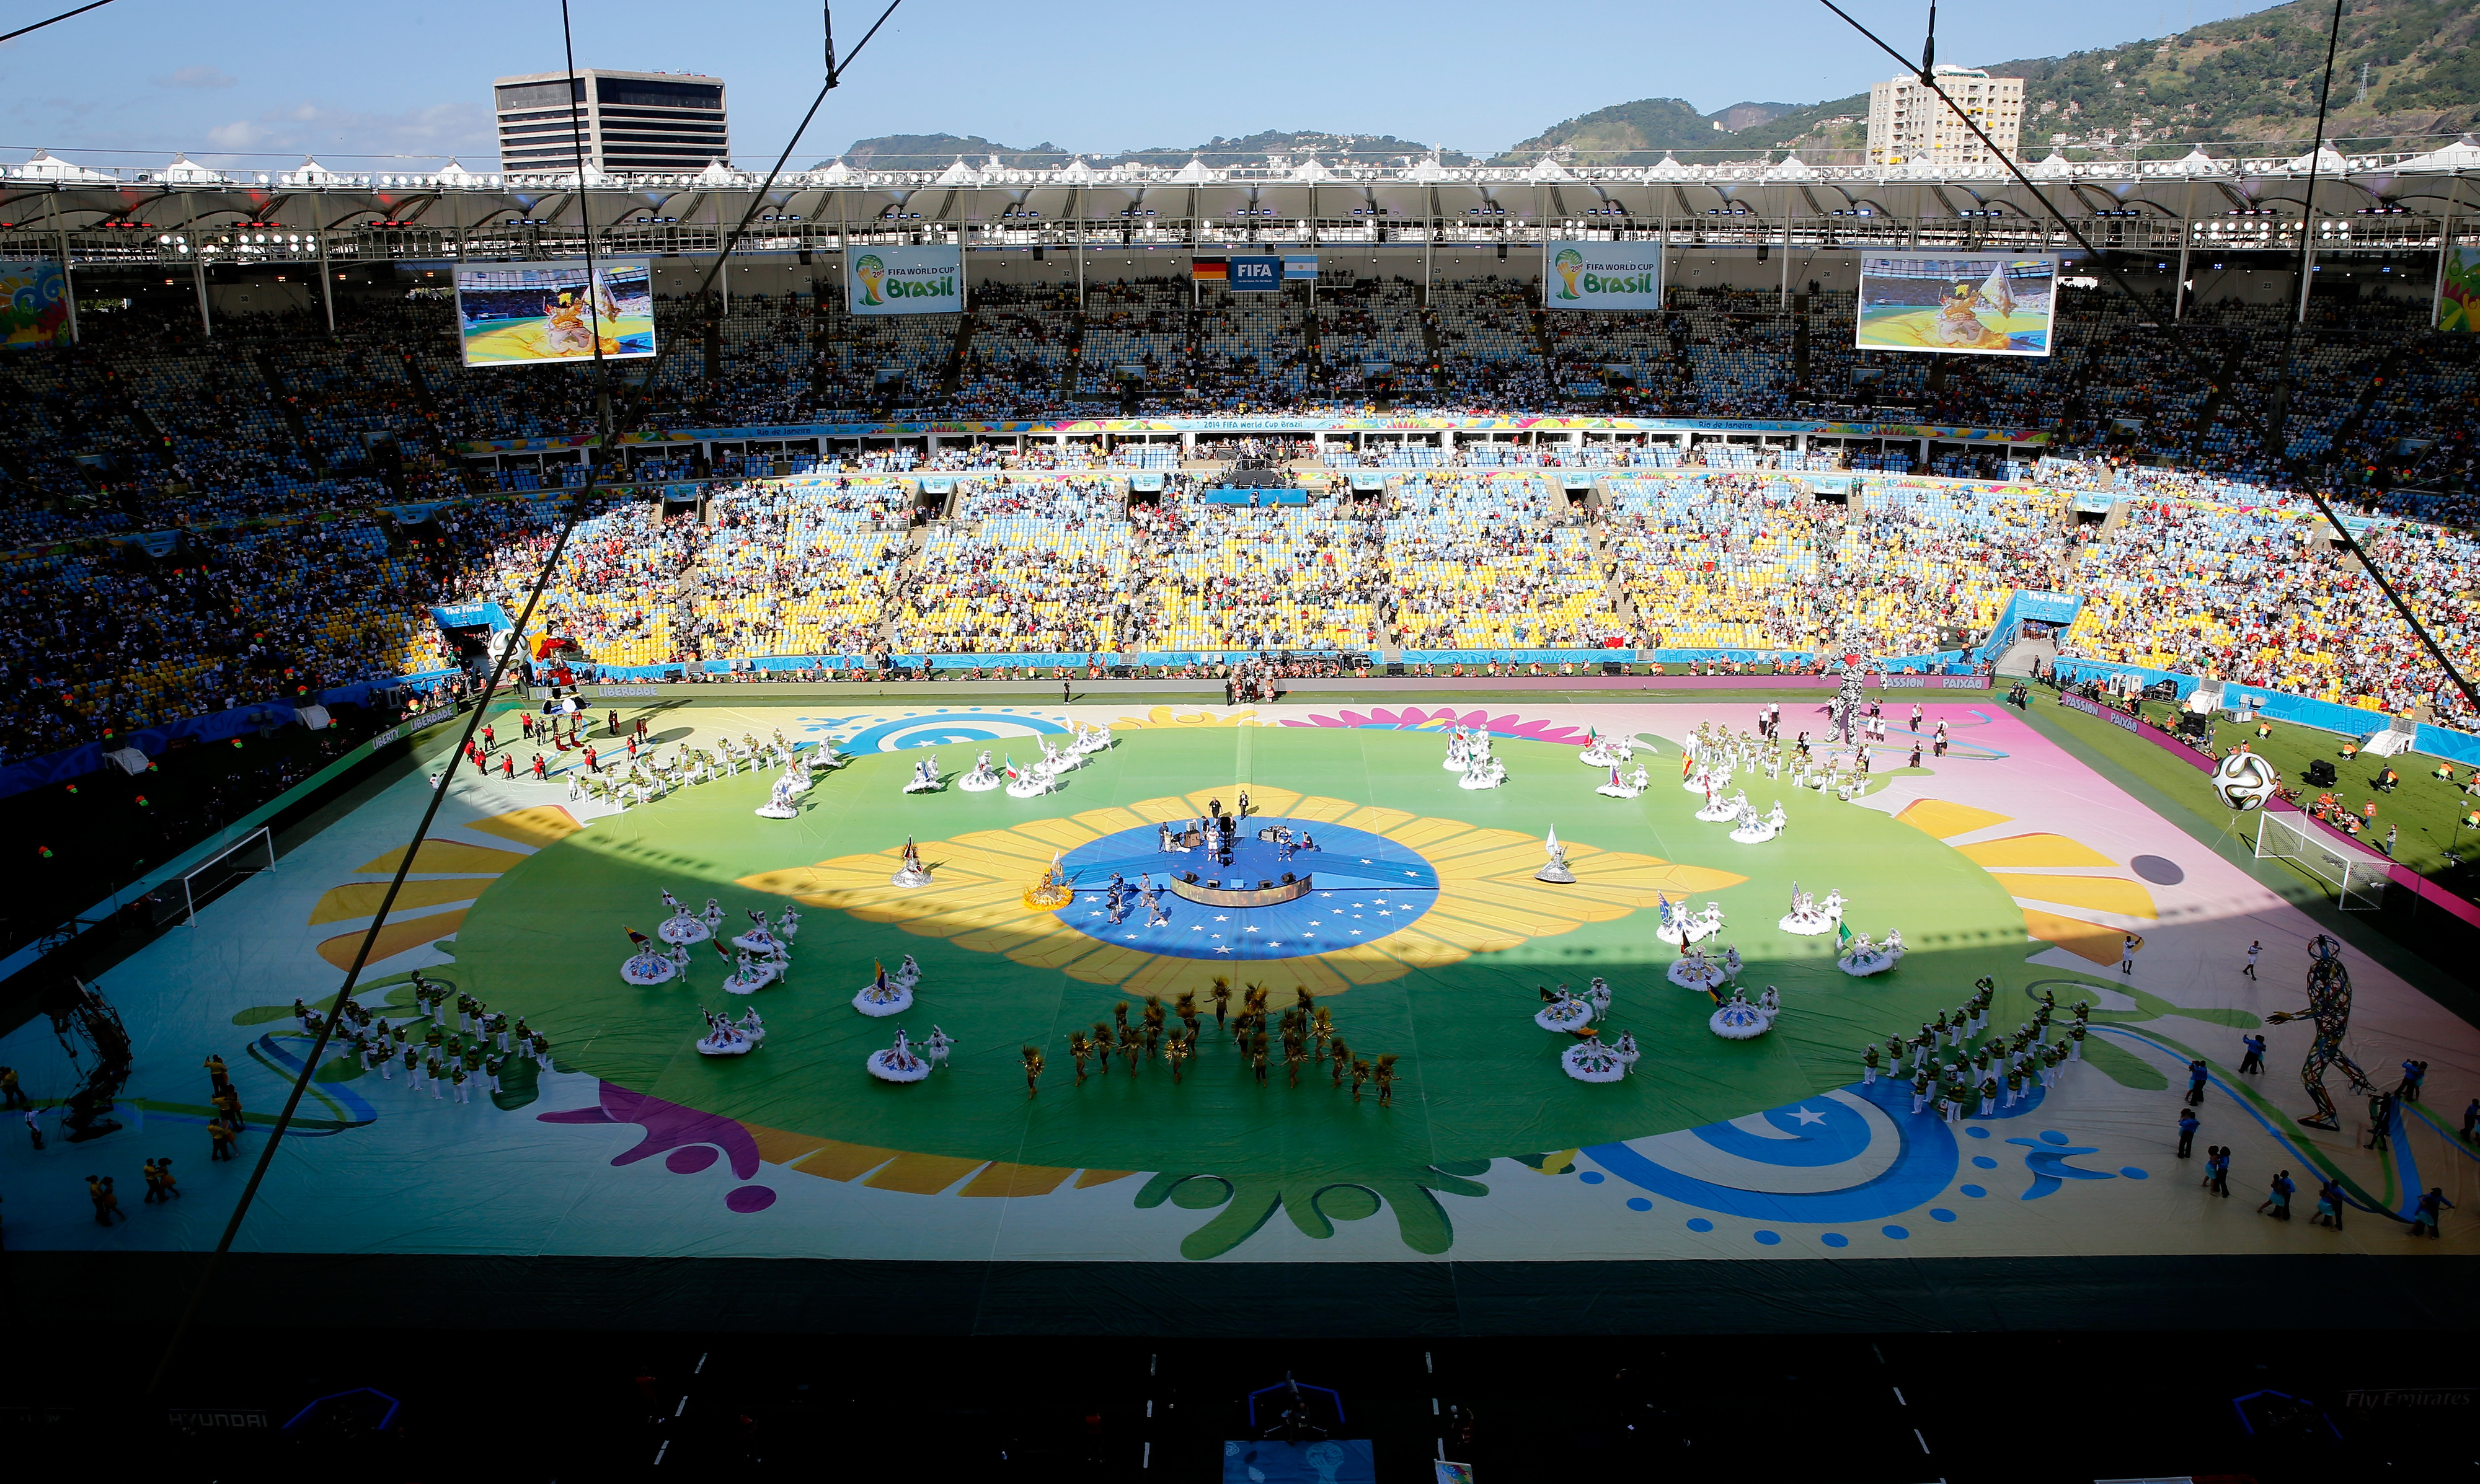 The historic Maracana was one of the places Xavier visited on their trip to Brazil.